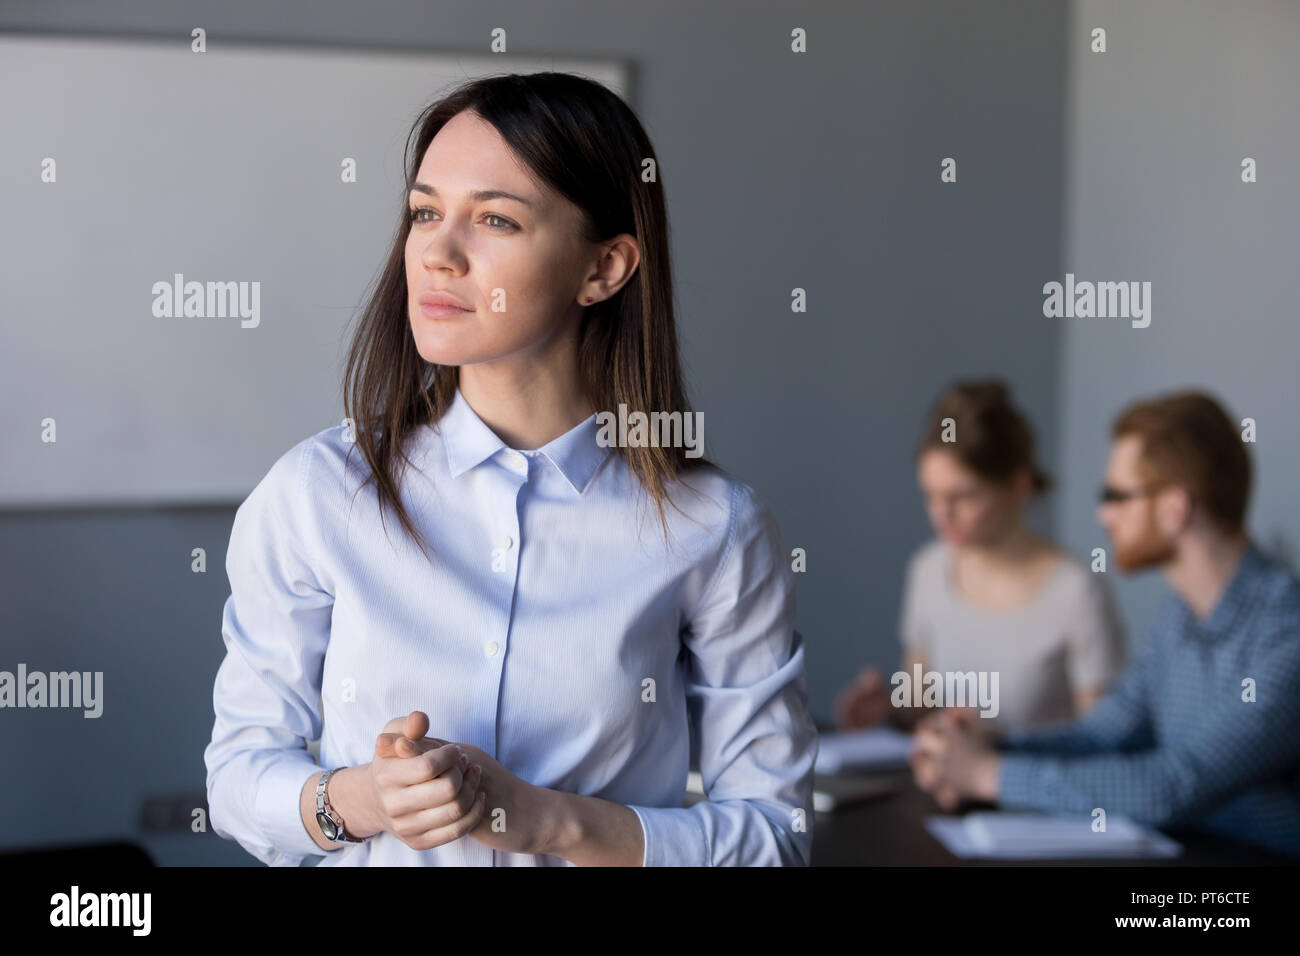 Thoughtful businesswoman looking away thinking of challenges, bu - Stock Image